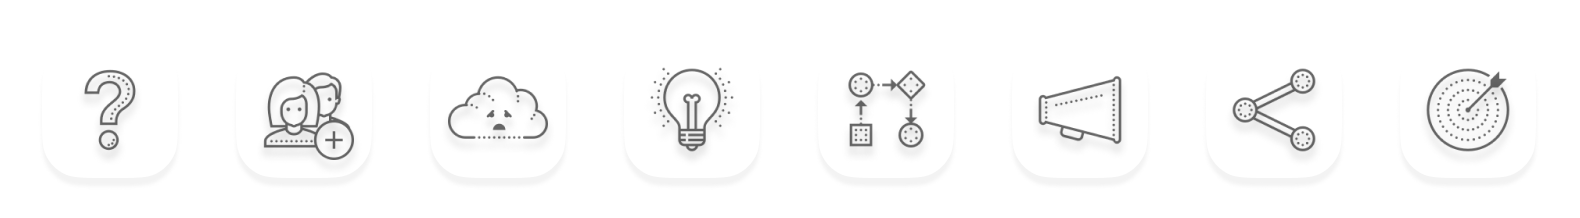 Image of eight icons visualising the components of the story canvas further explained in the story